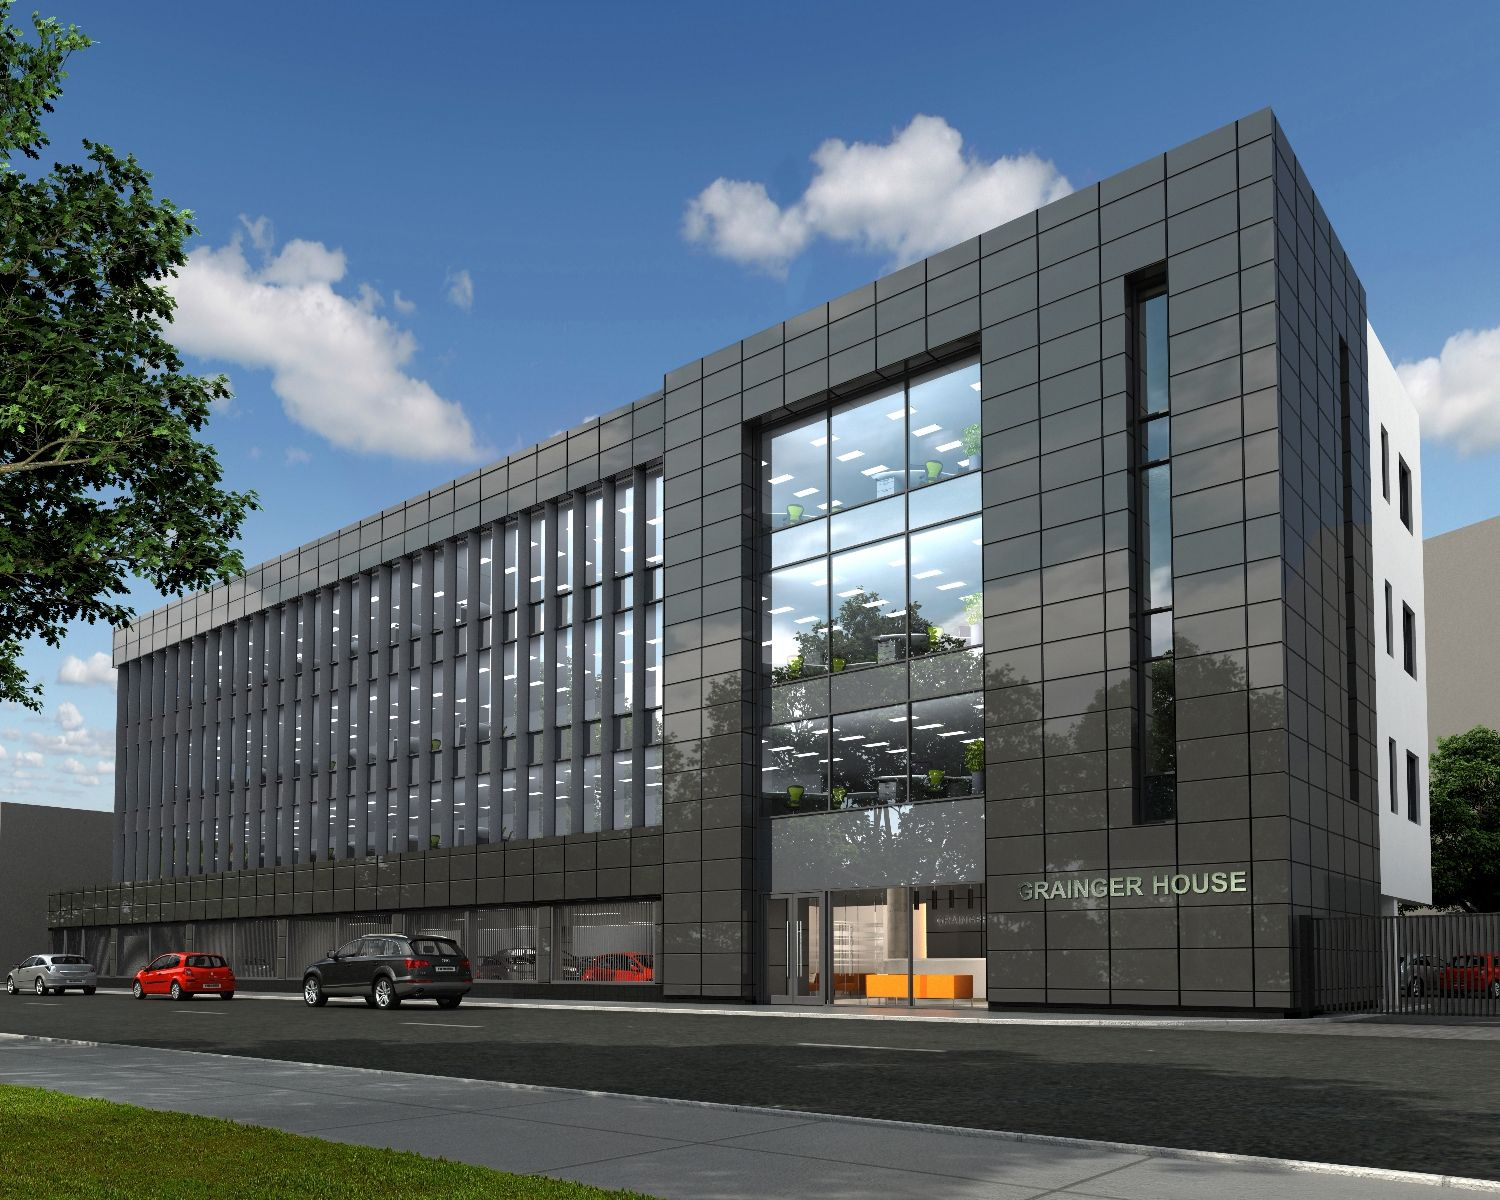 Superior Grainger House   A New Office Development On The River Dee Waterfront,  Aberdeen, Named